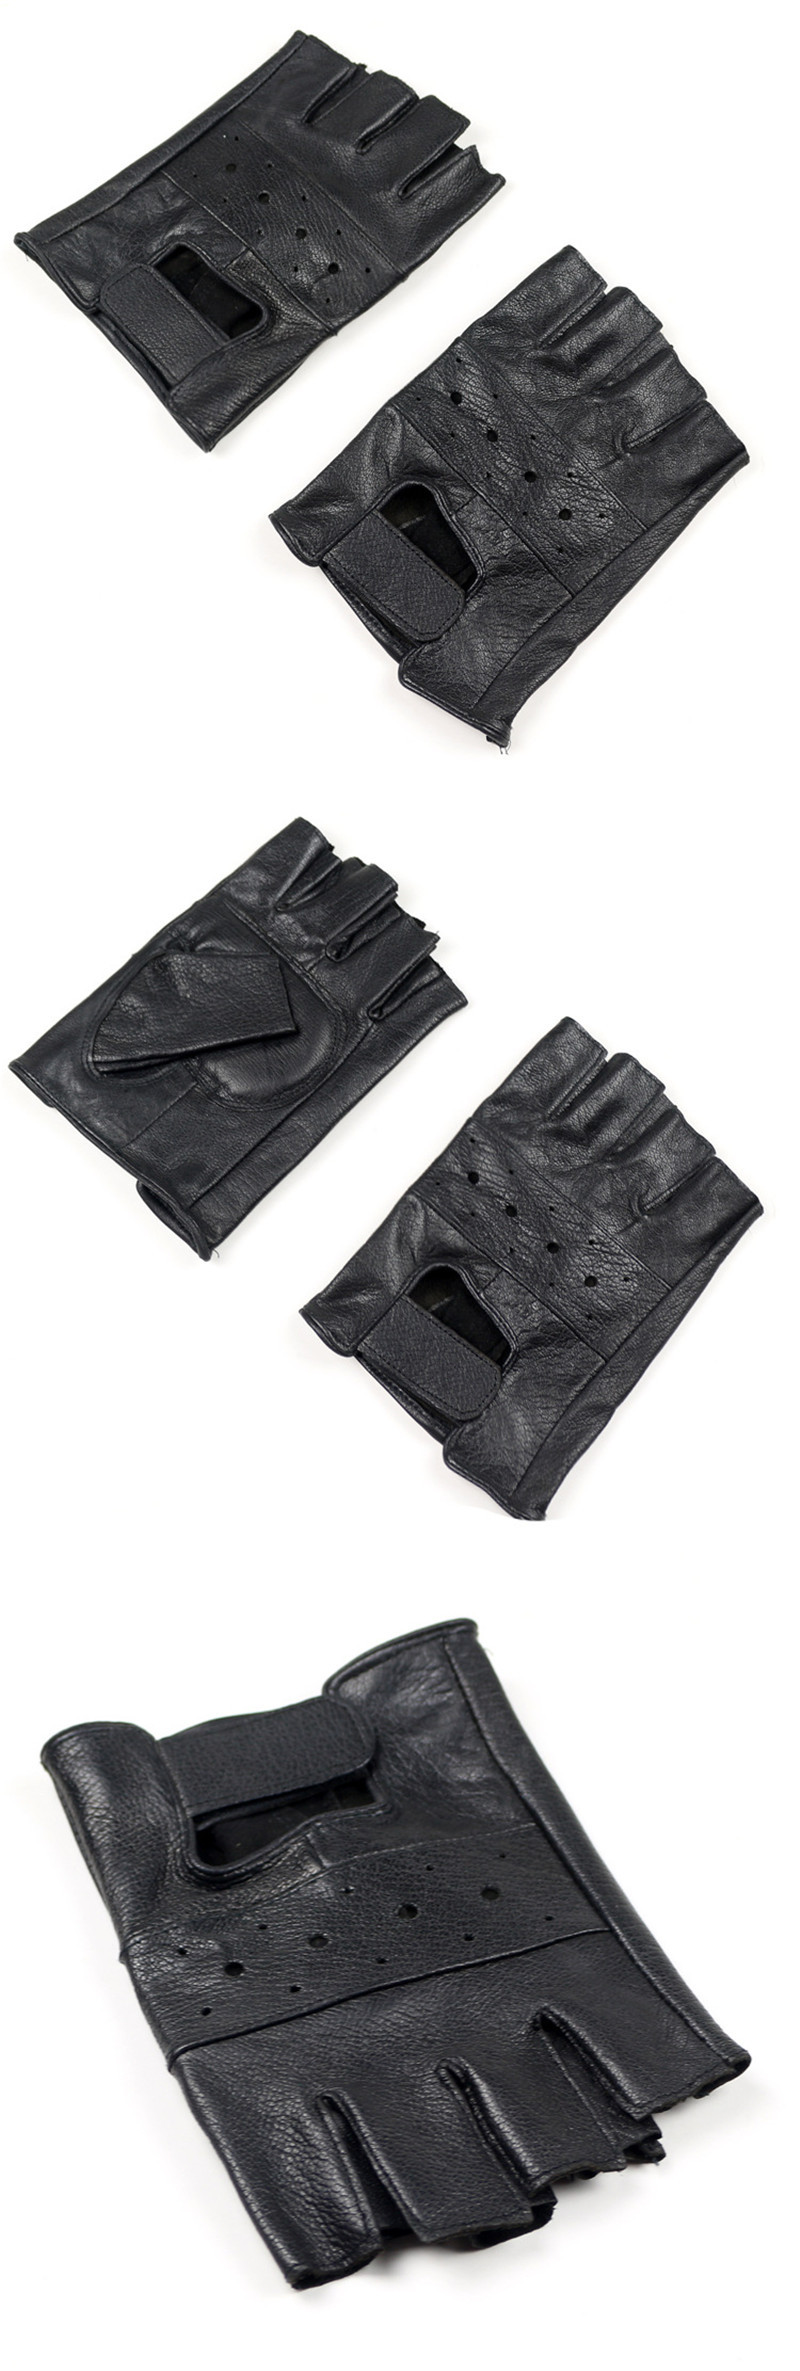 HTB1dkW9NAzoK1RjSZFlq6yi4VXai - New Style Mens Sheep Leather Driving Gloves Fitness Gloves Half Finger Tactical Gloves Black Guantes Luva